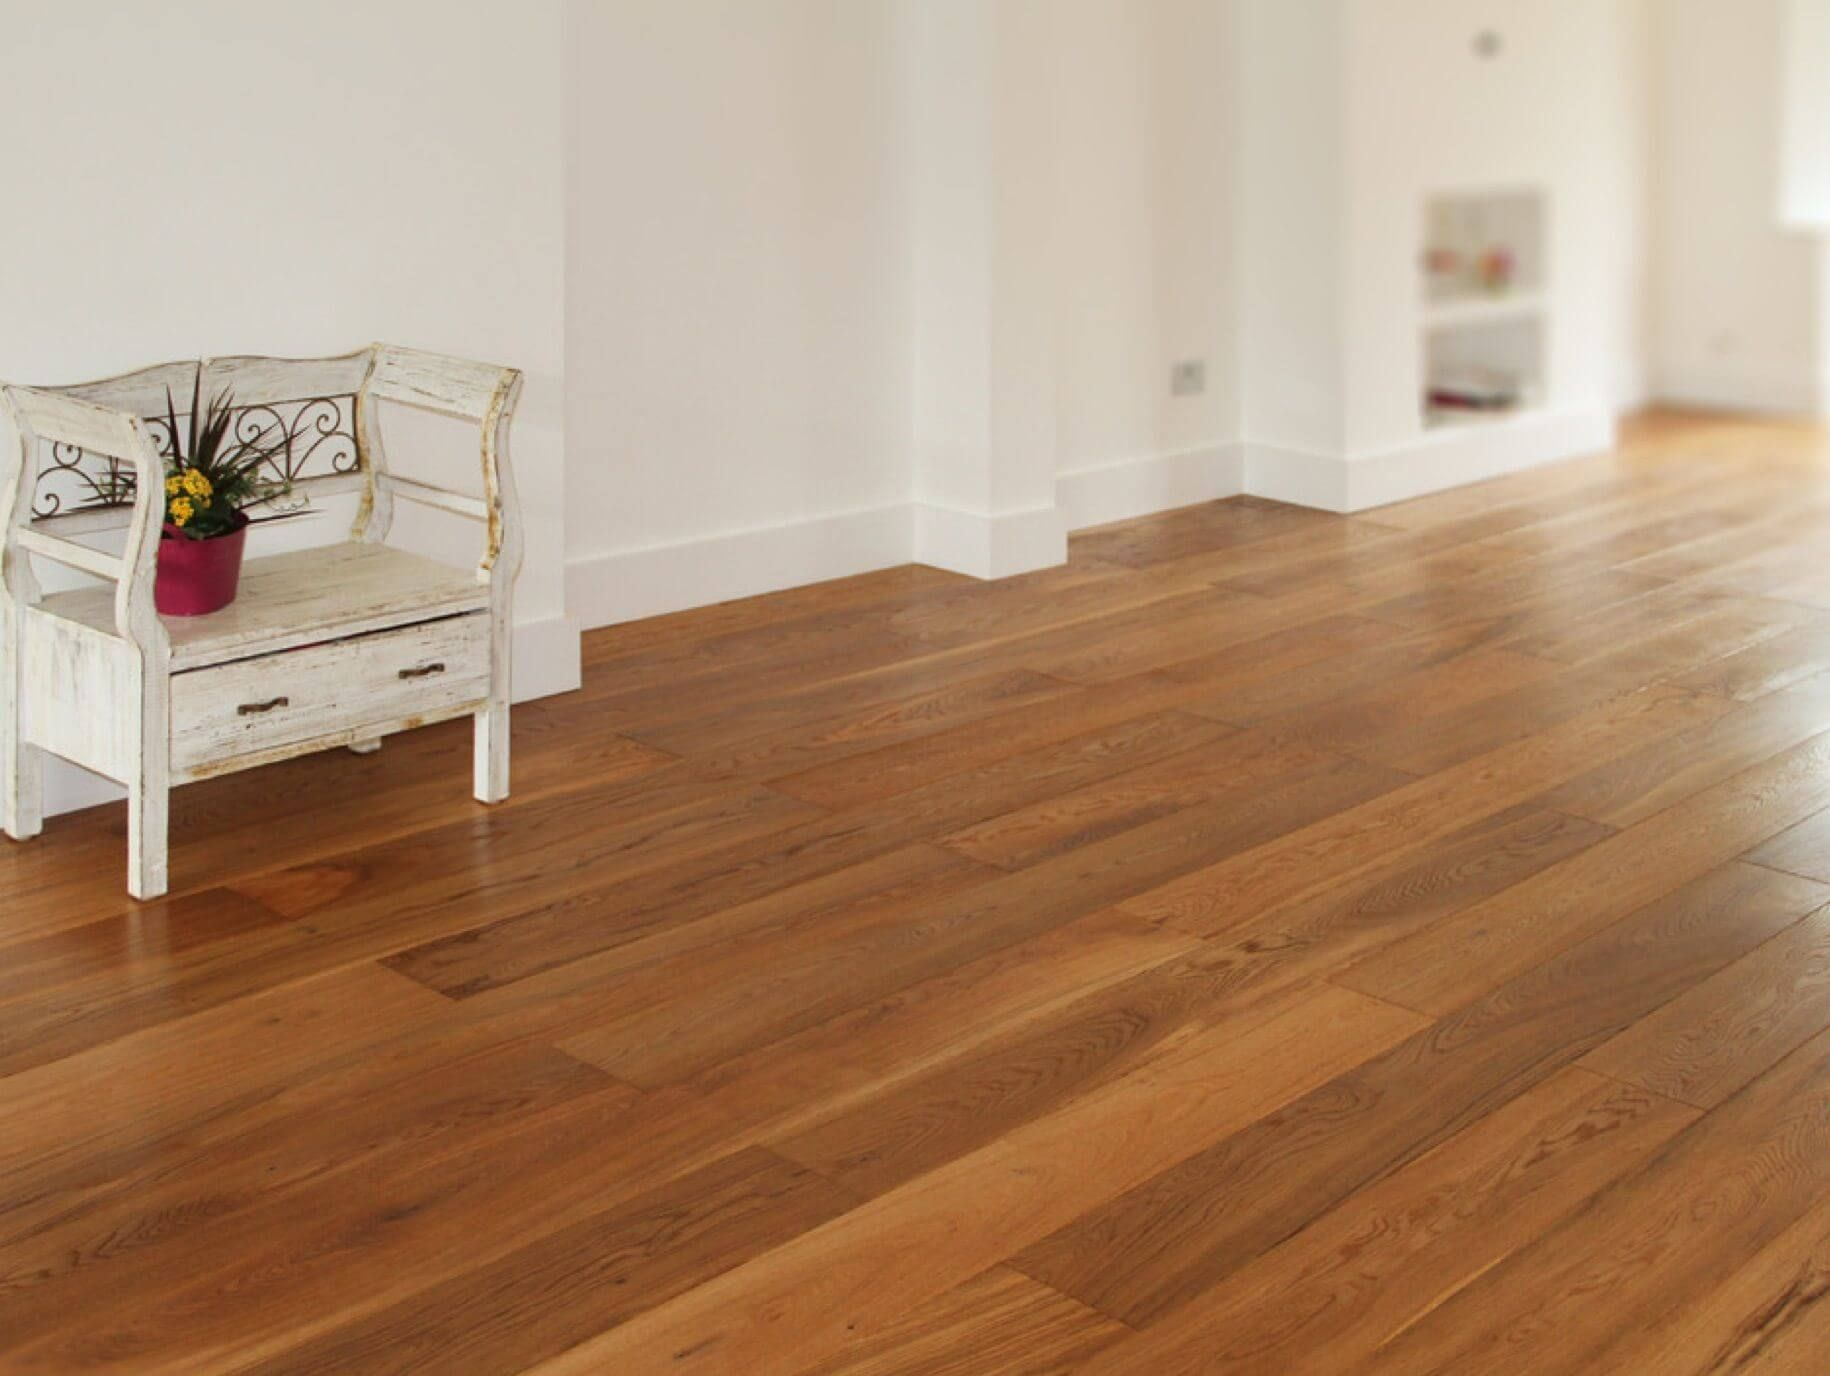 Flooring Guide Comparing Solid Wood and Laminate Wood